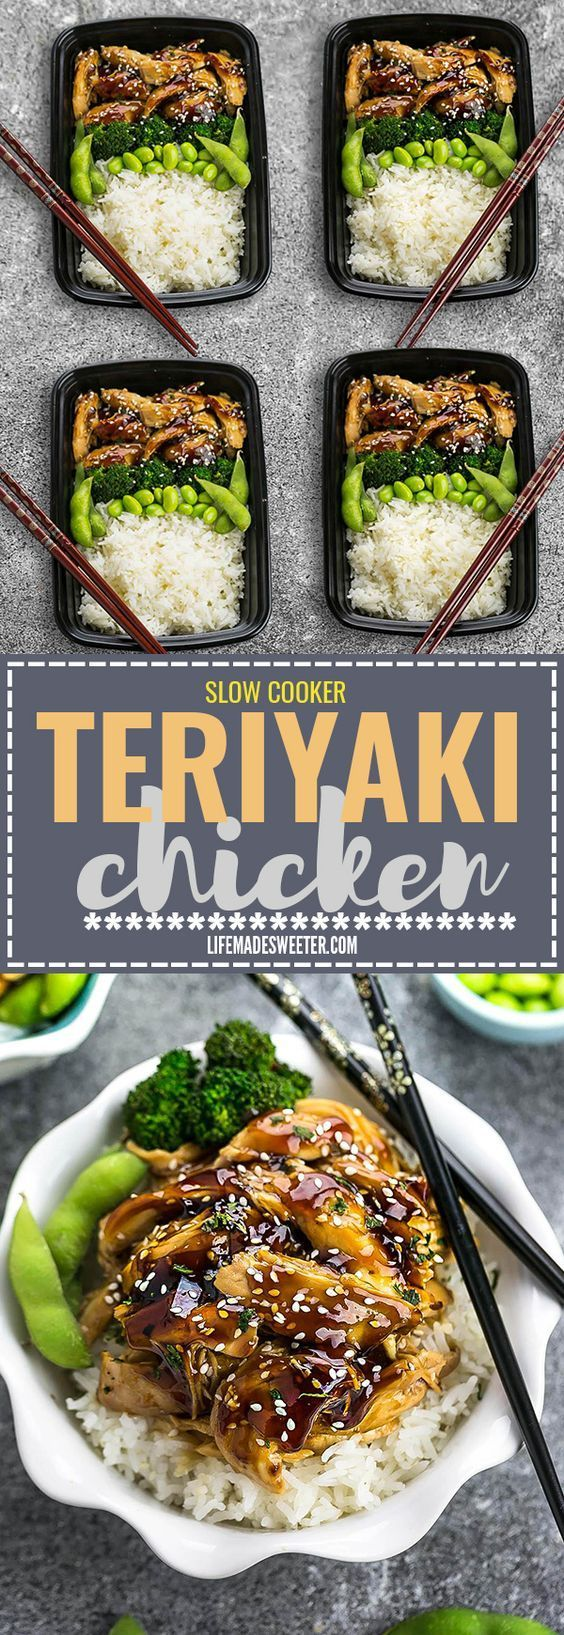 how to make bottled teriyaki sauce better